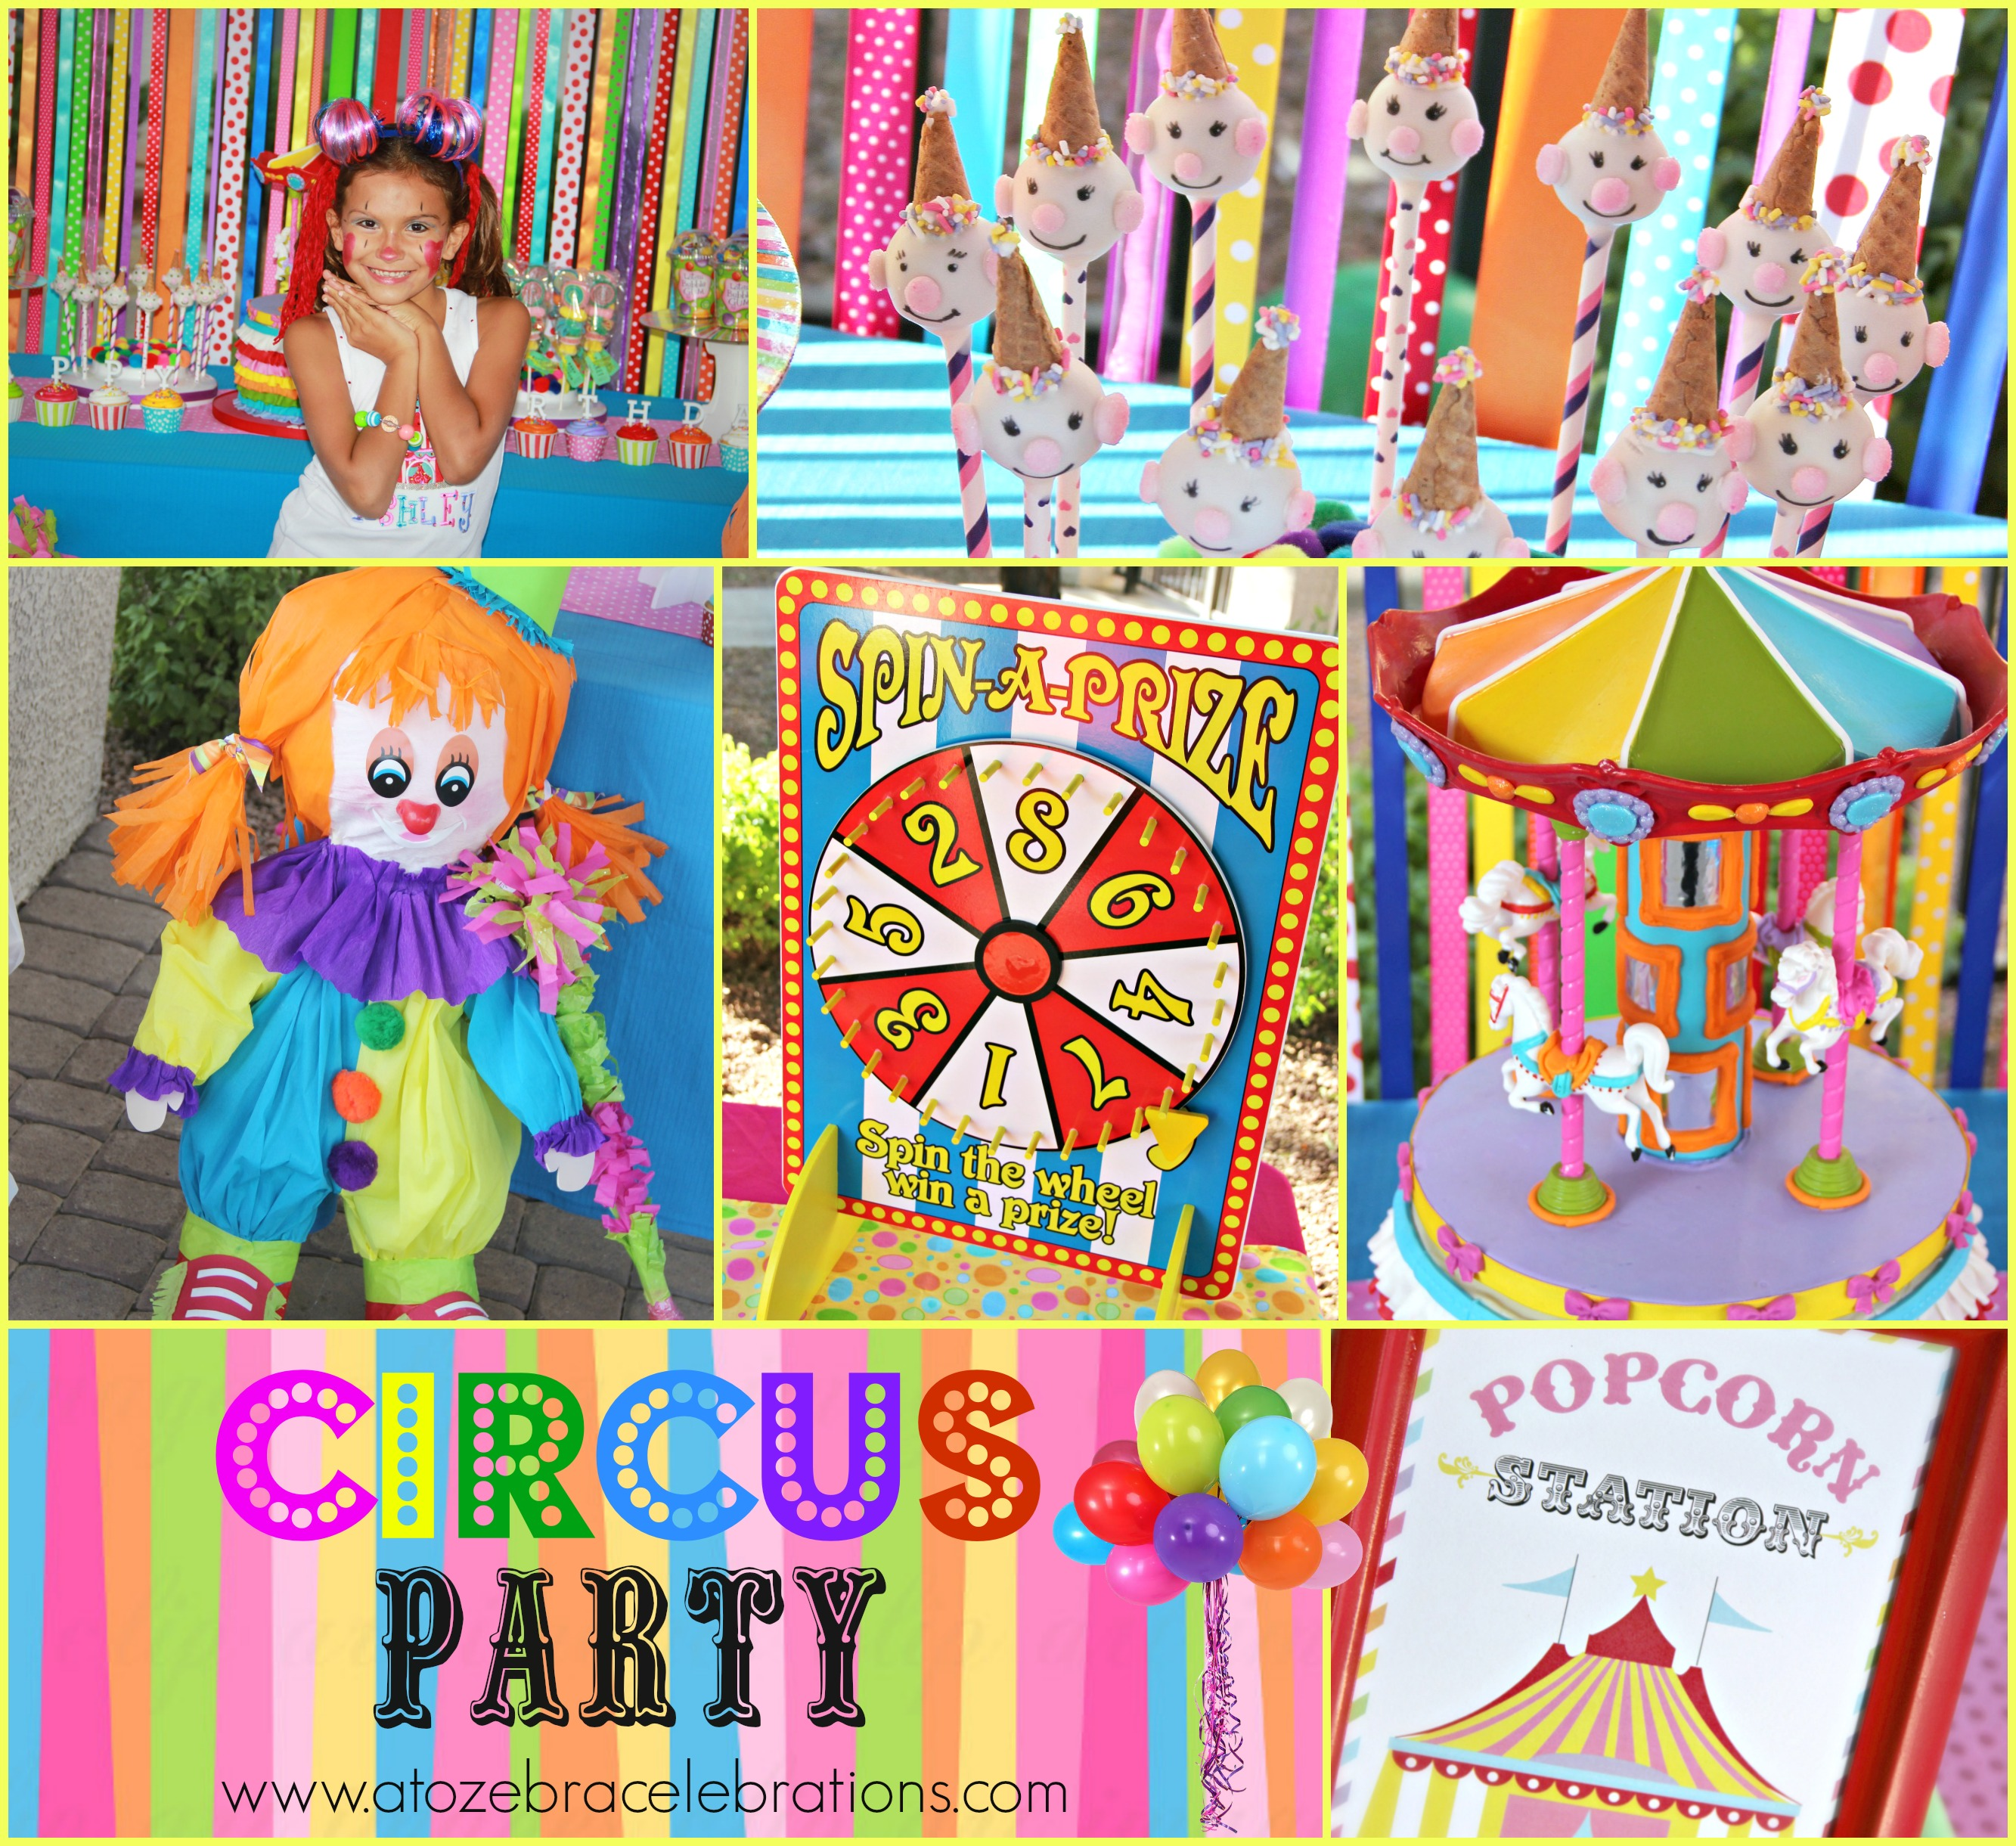 Circus party1